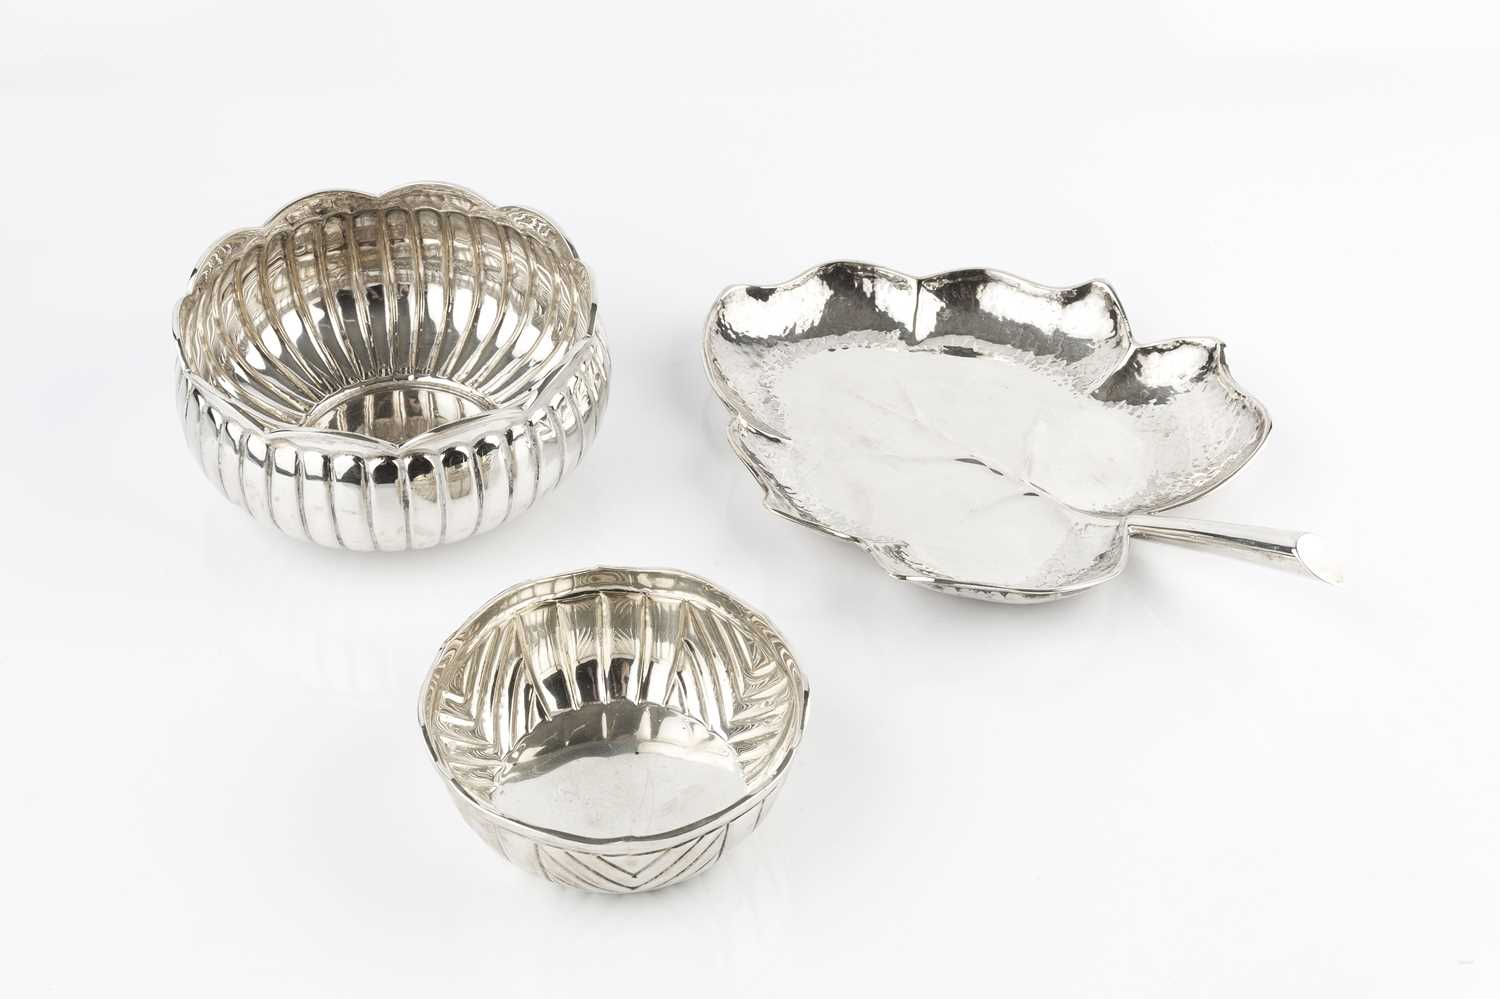 A Peruvian silver leaf shaped dish, with planished border, stamped '925 Sterling Peru', 26cm long,